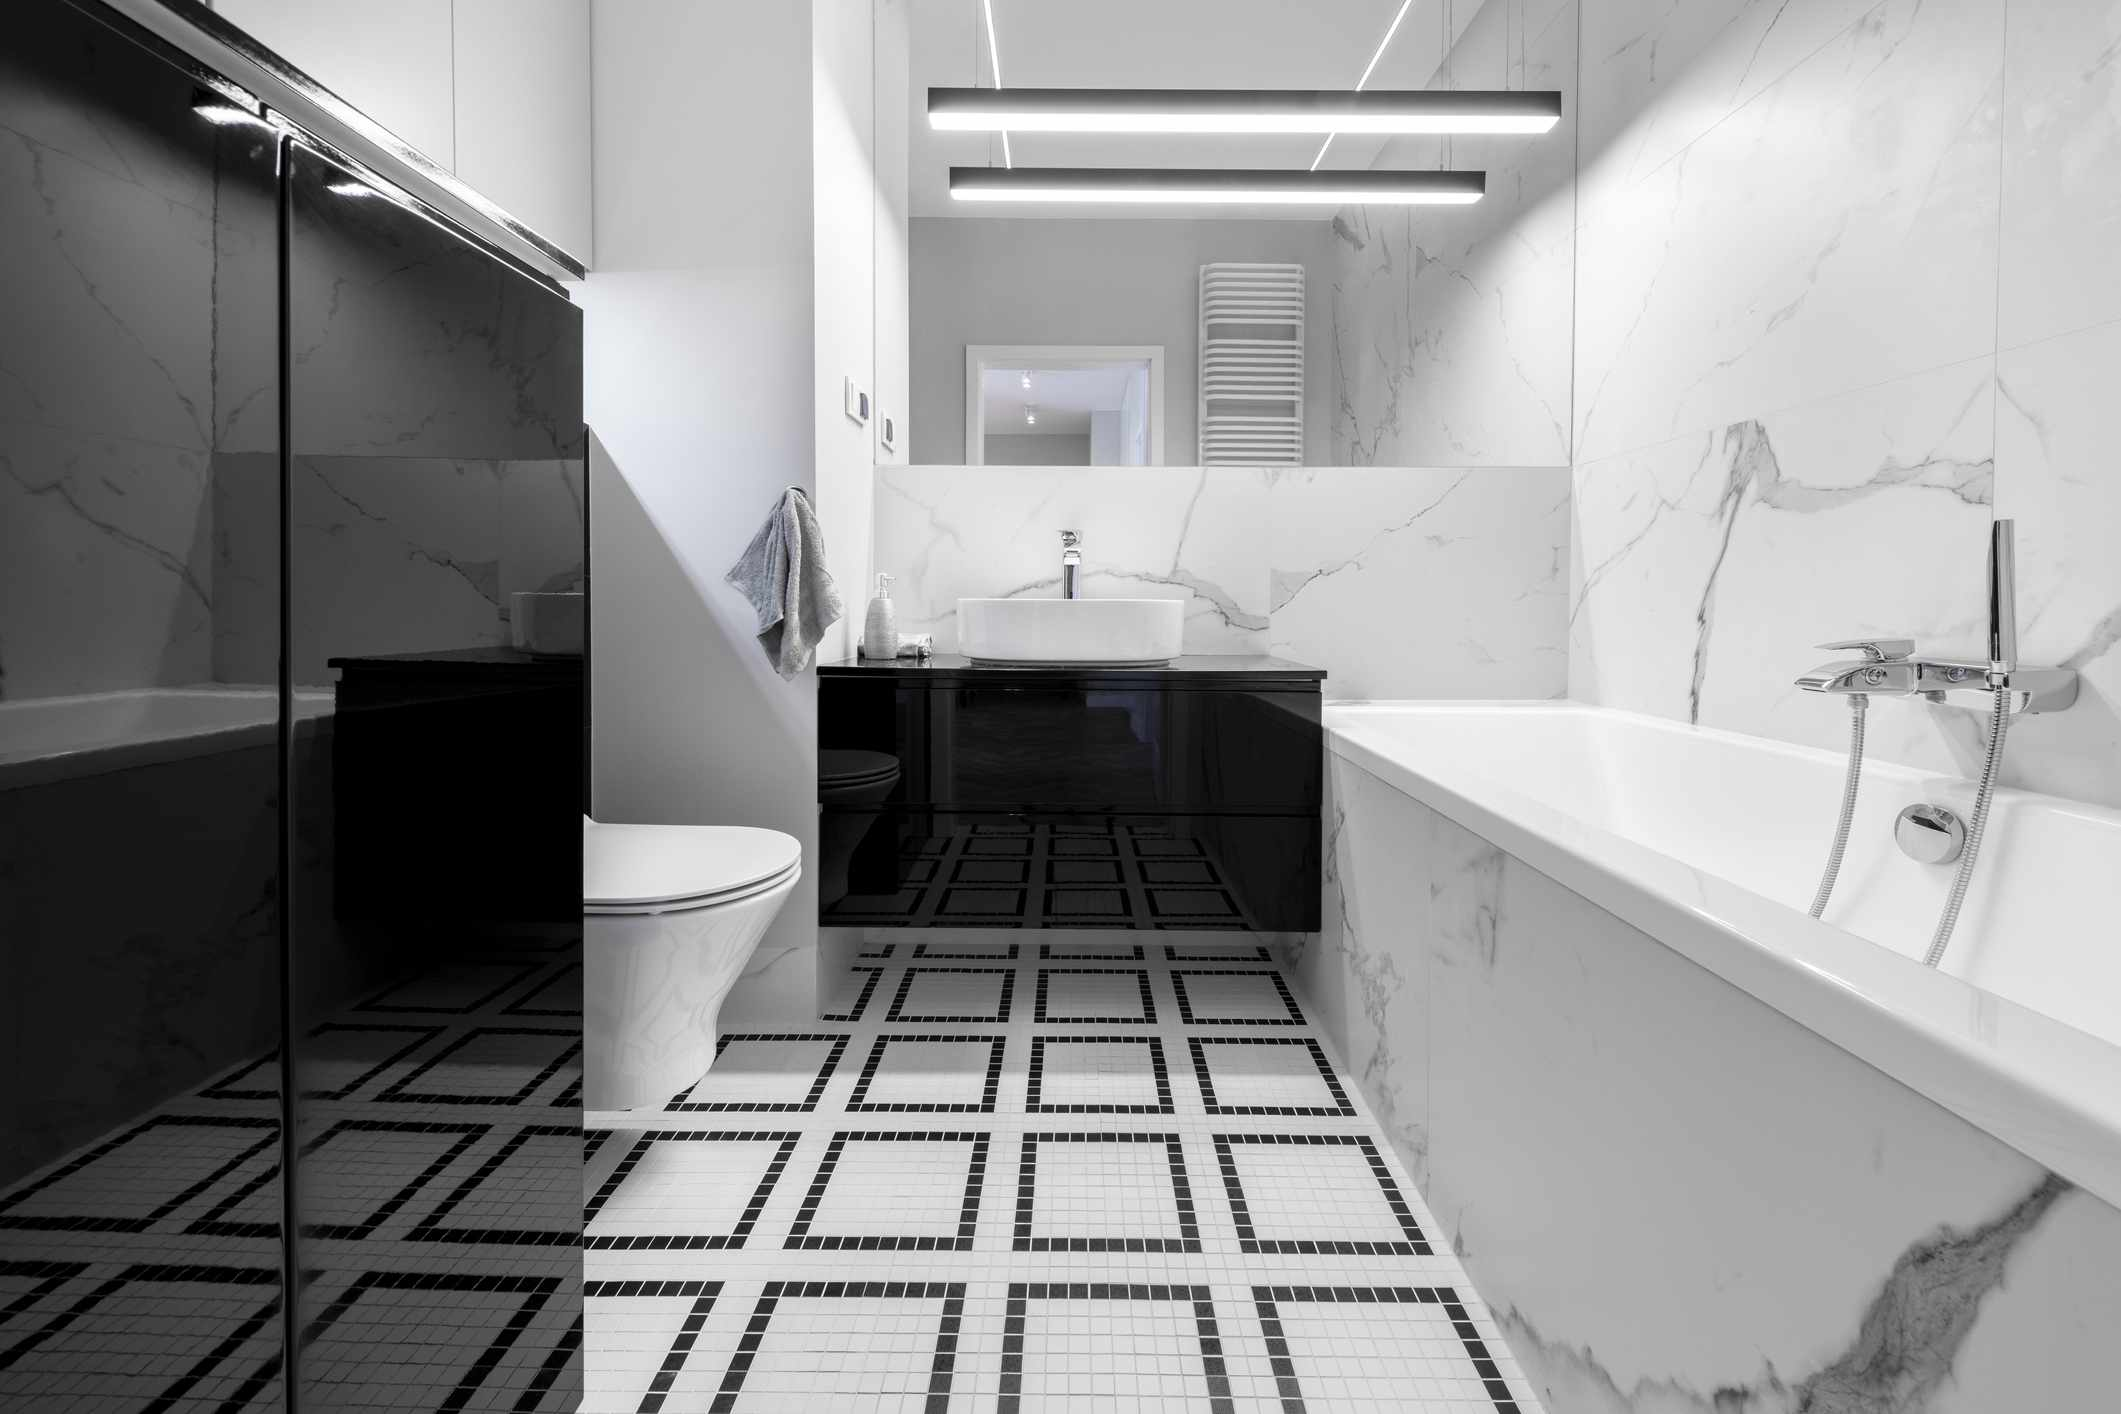 Stylish Wall and Floor Tiling Solutions for Your Bathrooms